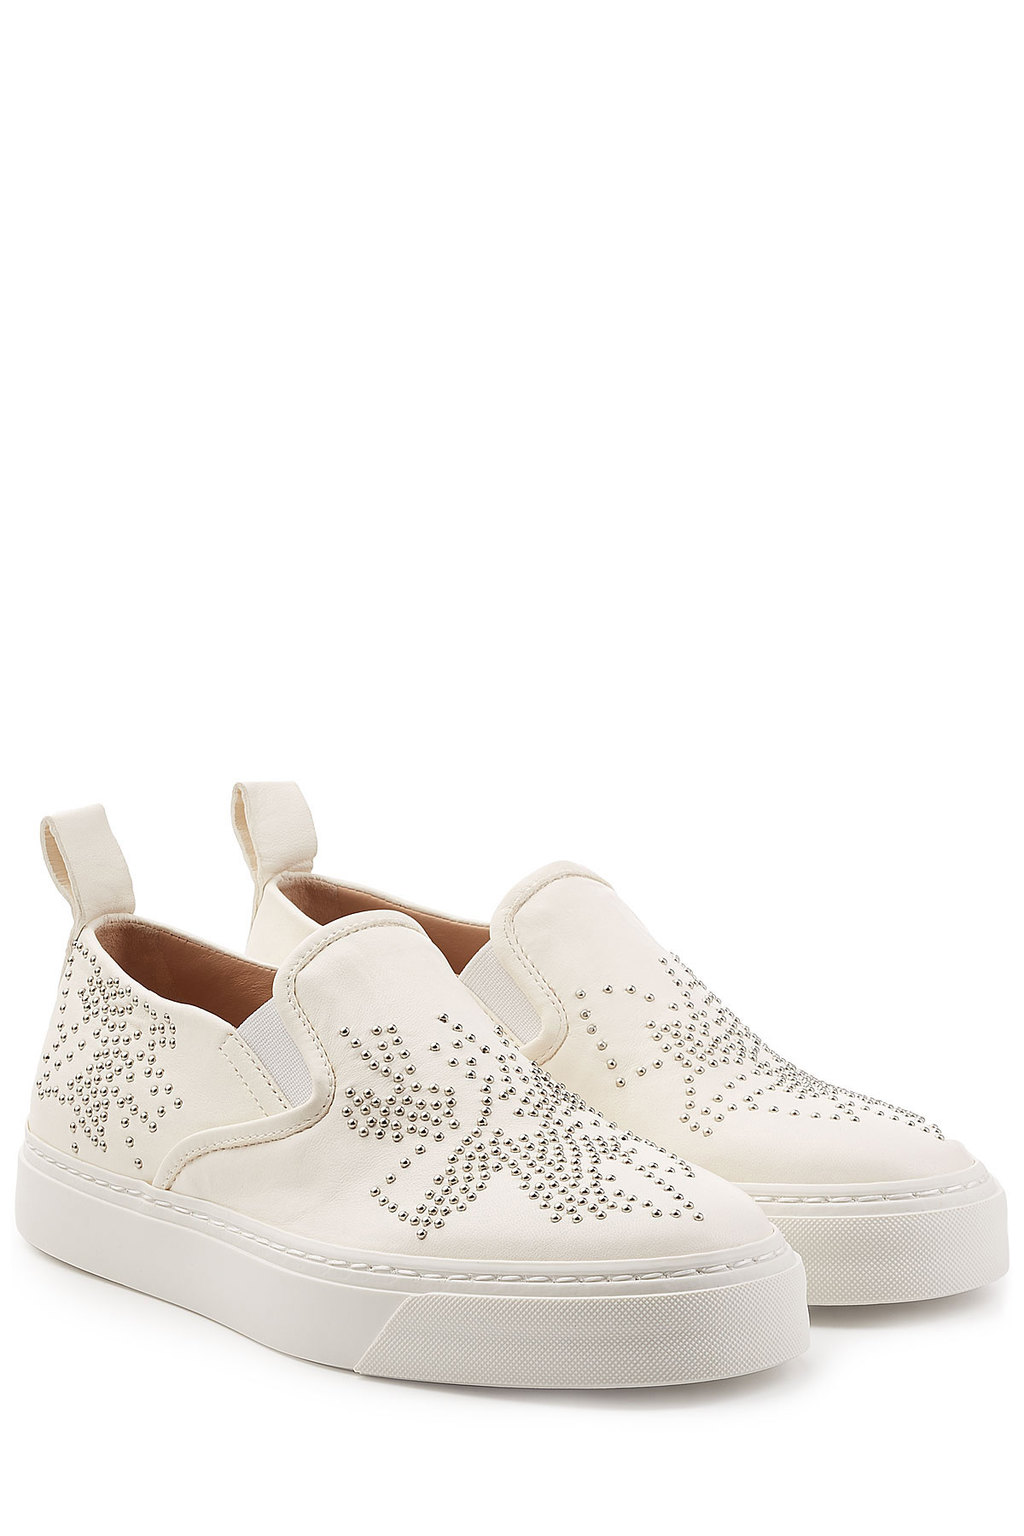 Embellished Leather Slip On Sneakers - predominant colour: white; occasions: casual; material: leather; heel height: flat; embellishment: jewels/stone; toe: round toe; style: trainers; finish: plain; pattern: plain; season: s/s 2016; wardrobe: basic